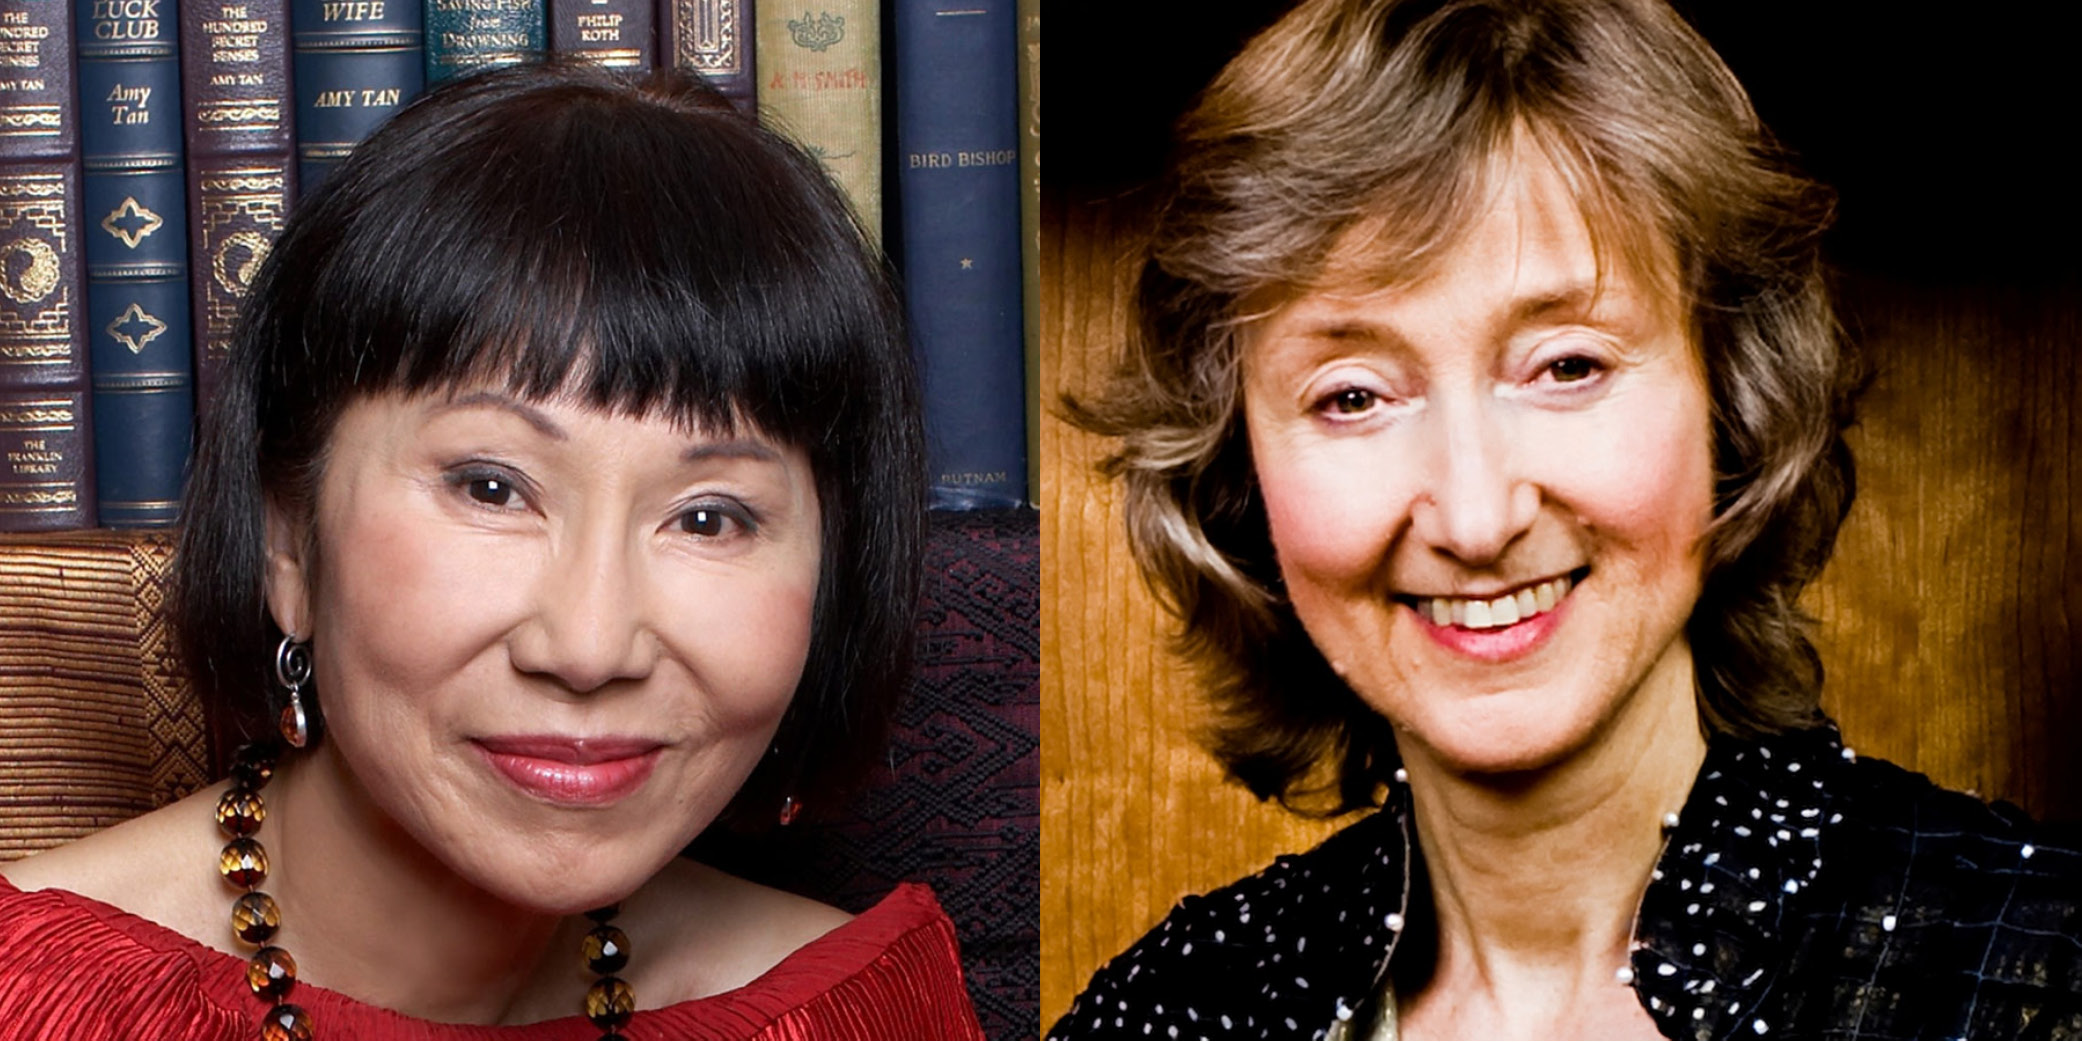 podcasts pen faulkner foundation page  amy tan deborah tannen composite